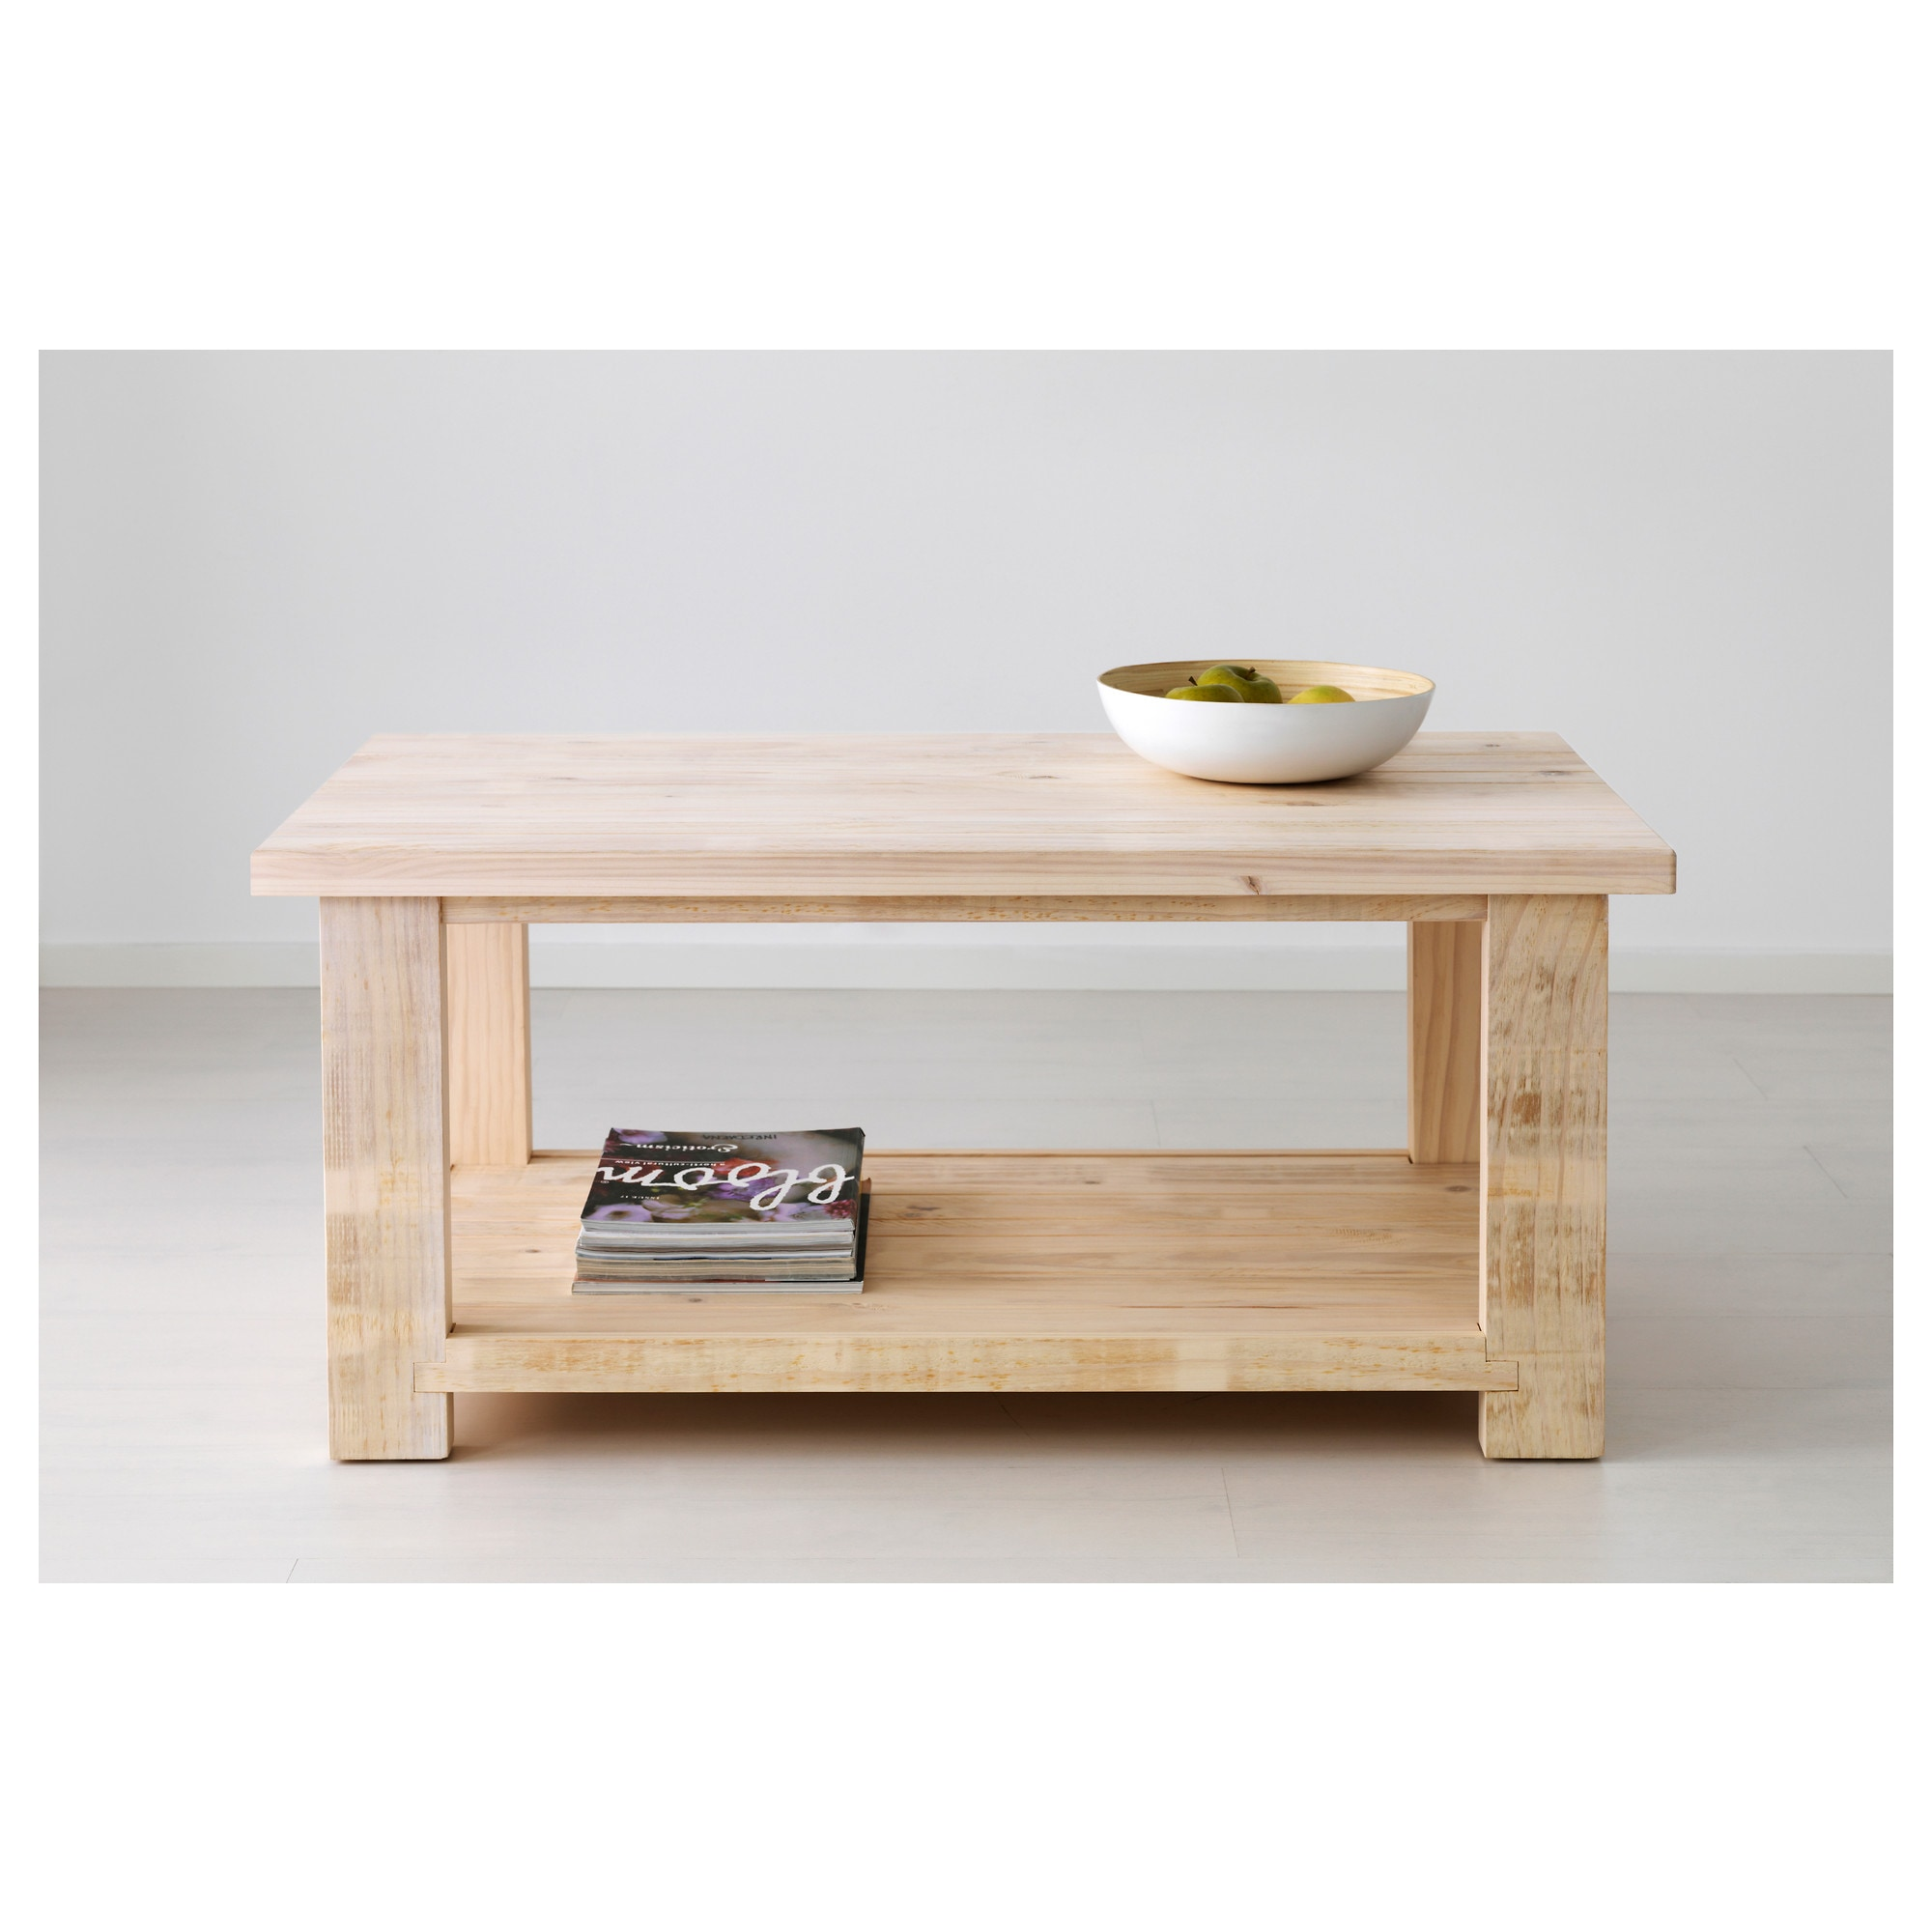 Designer Large Coffee Tables Table Category : 0258097PE402079S5 from stufing.com size 2000 x 2000 jpeg 305kB